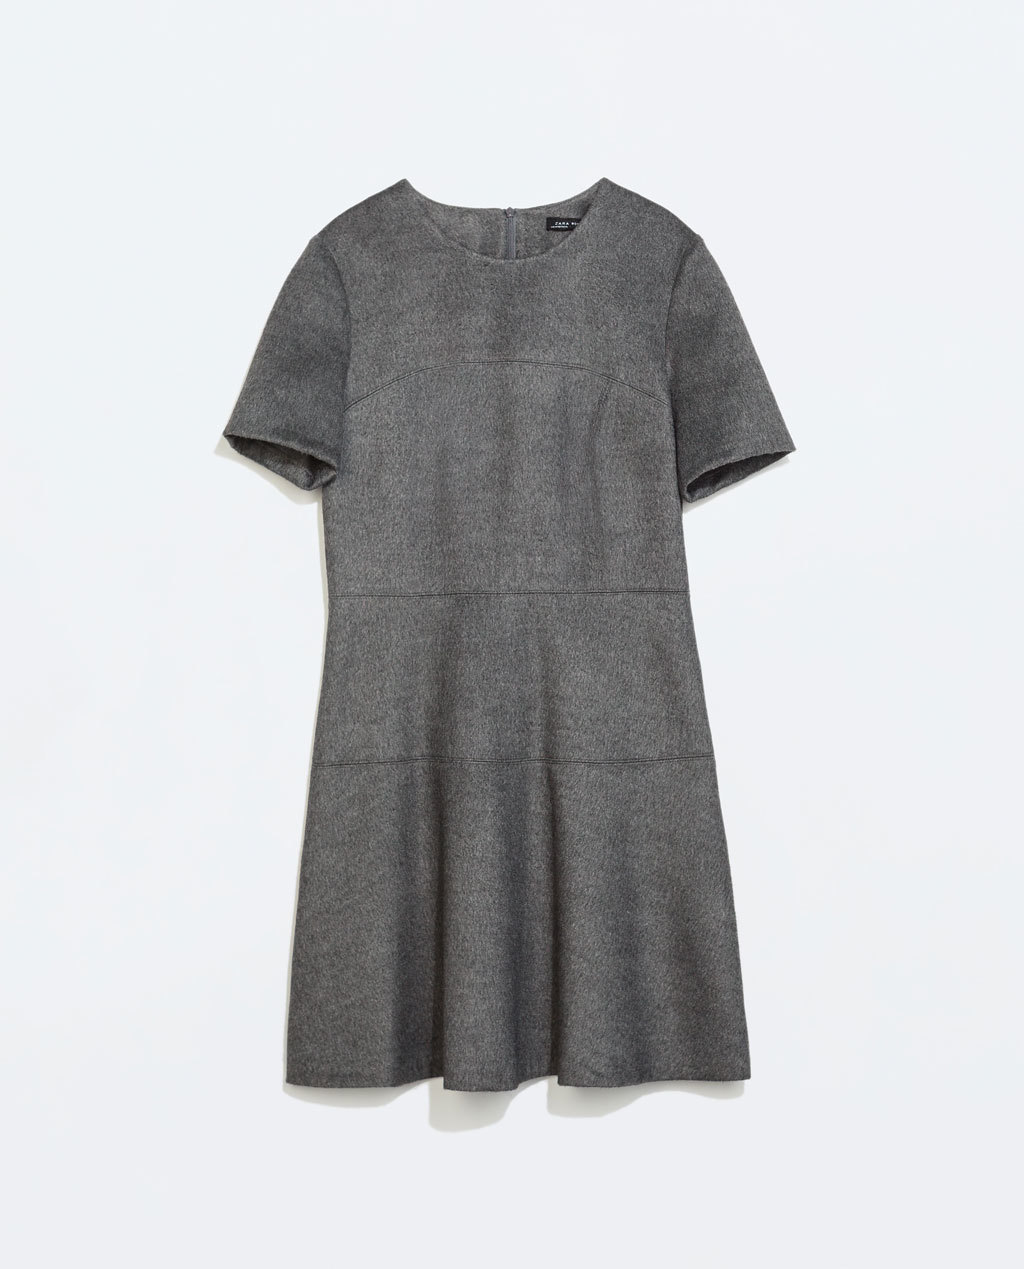 Seamed Dress With Overskirt - style: shift; neckline: round neck; pattern: plain; predominant colour: mid grey; occasions: casual, creative work; length: just above the knee; fit: soft a-line; fibres: polyester/polyamide - mix; sleeve length: short sleeve; sleeve style: standard; texture group: woven light midweight; season: a/w 2014